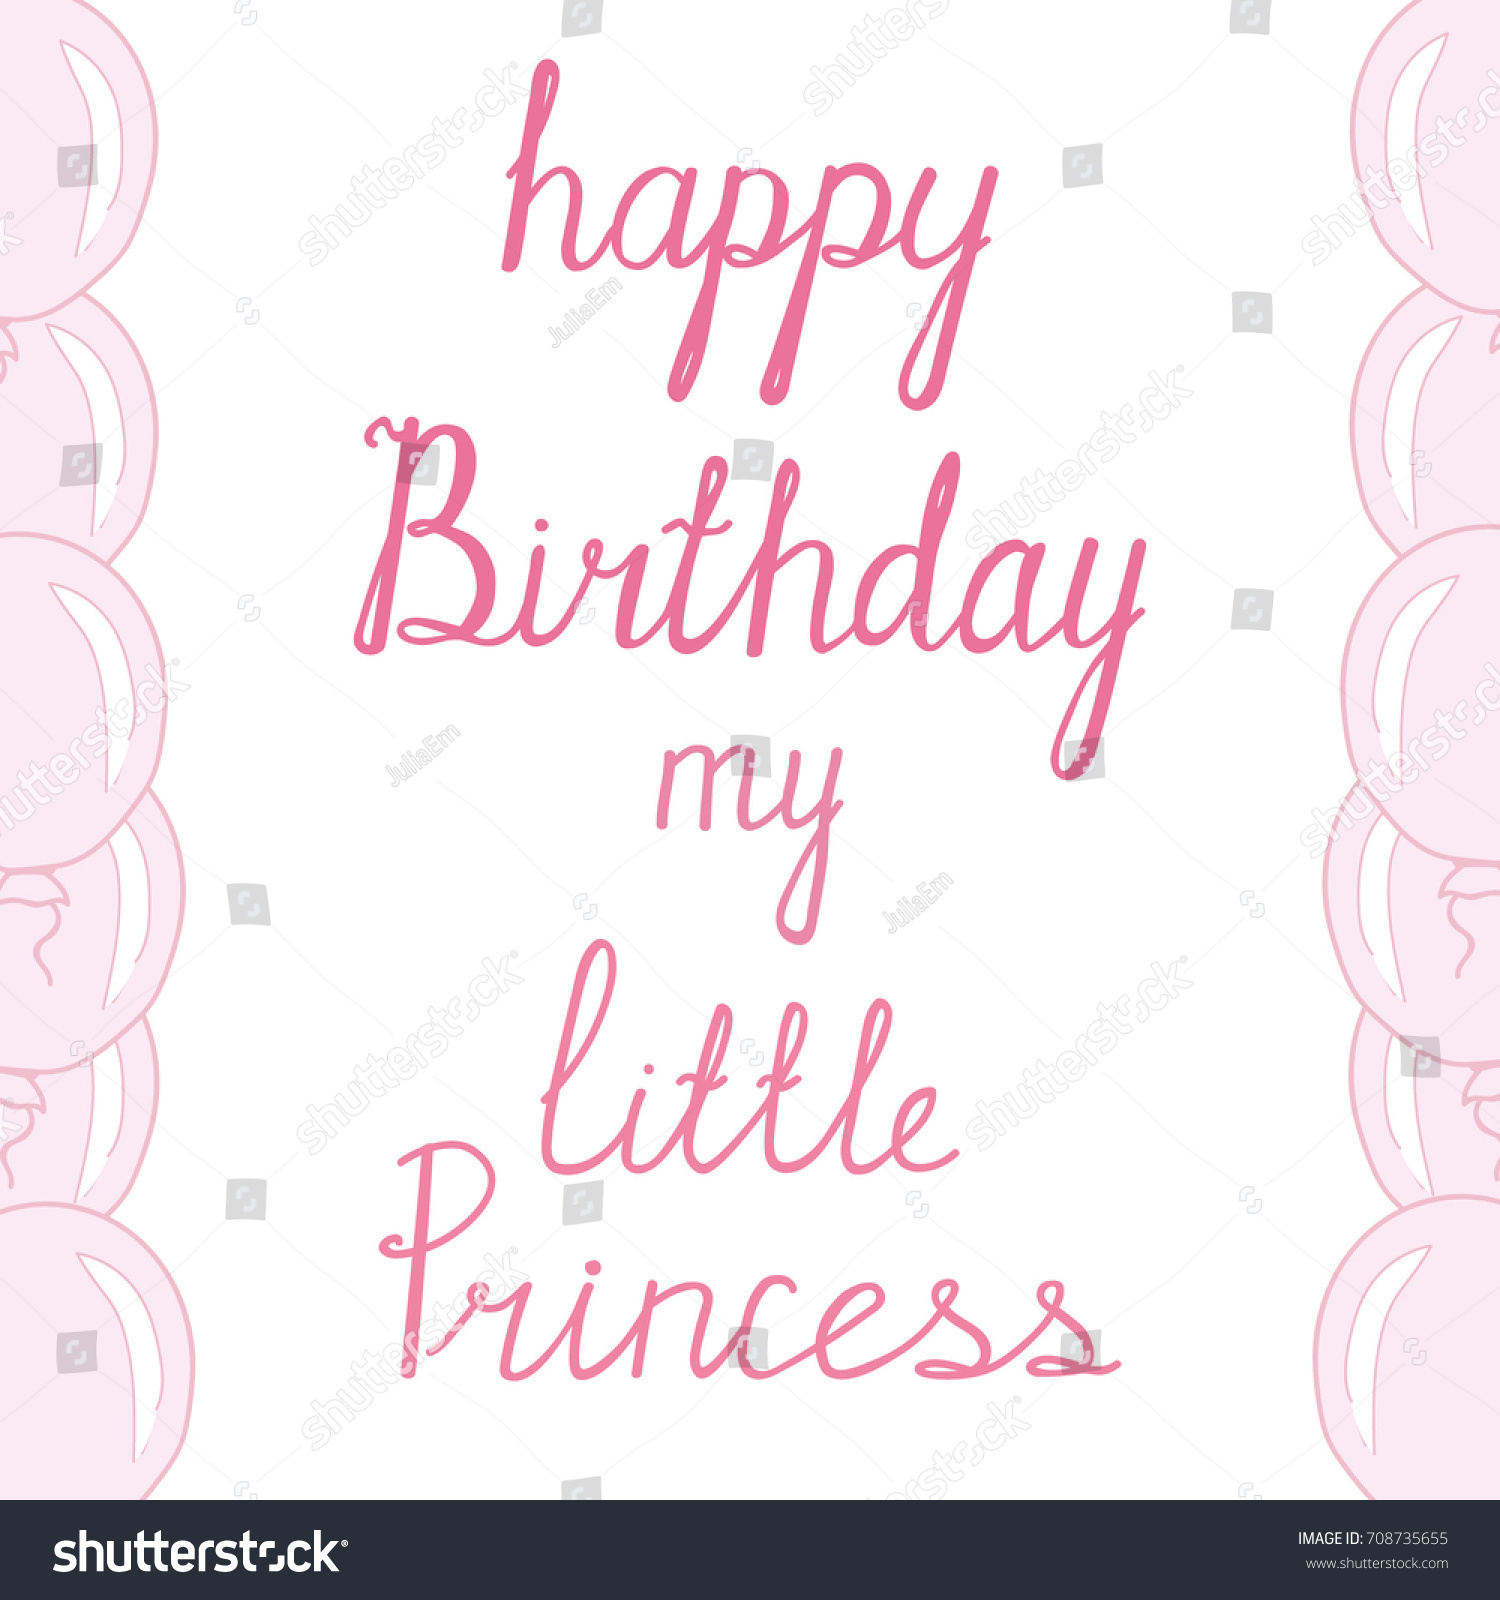 happy birthday my little princess ; stock-vector-lettering-happy-birthday-my-little-princess-pink-words-and-balloons-on-a-white-background-hand-708735655